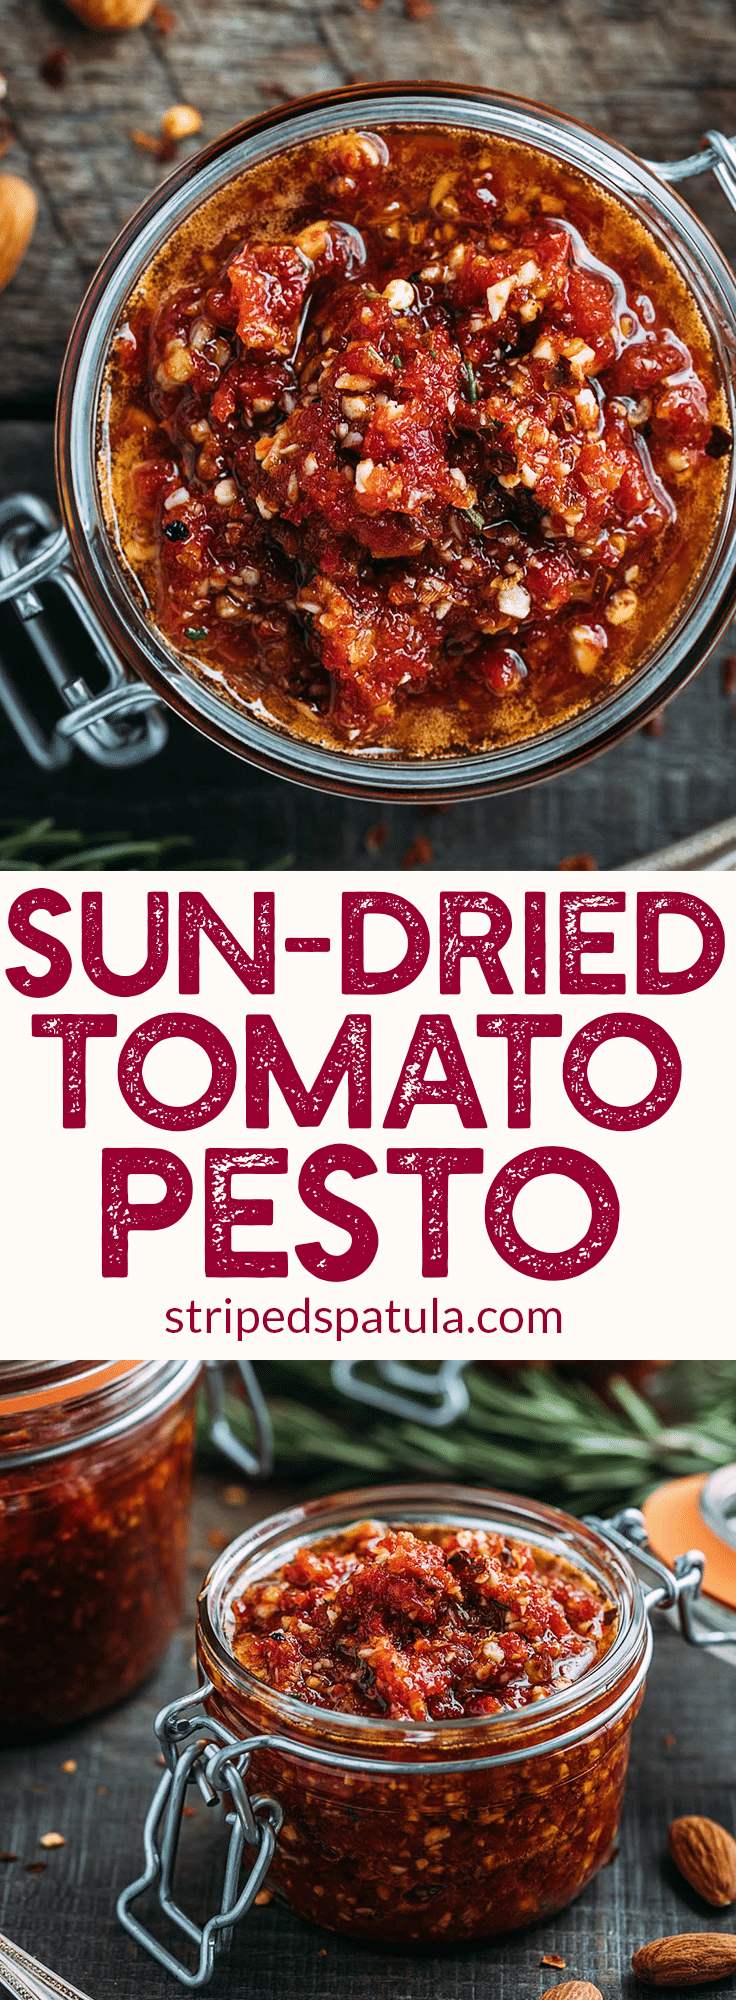 Sun-Dried Tomato Pesto Recipe (Pesto Rosso) - A rich pesto variation that's naturally gluten-free and vegan! | Sun-Dried Tomato Recipes | Pasta Sauce Recipes | #pesto #sauce #glutenfree #veganrecipes